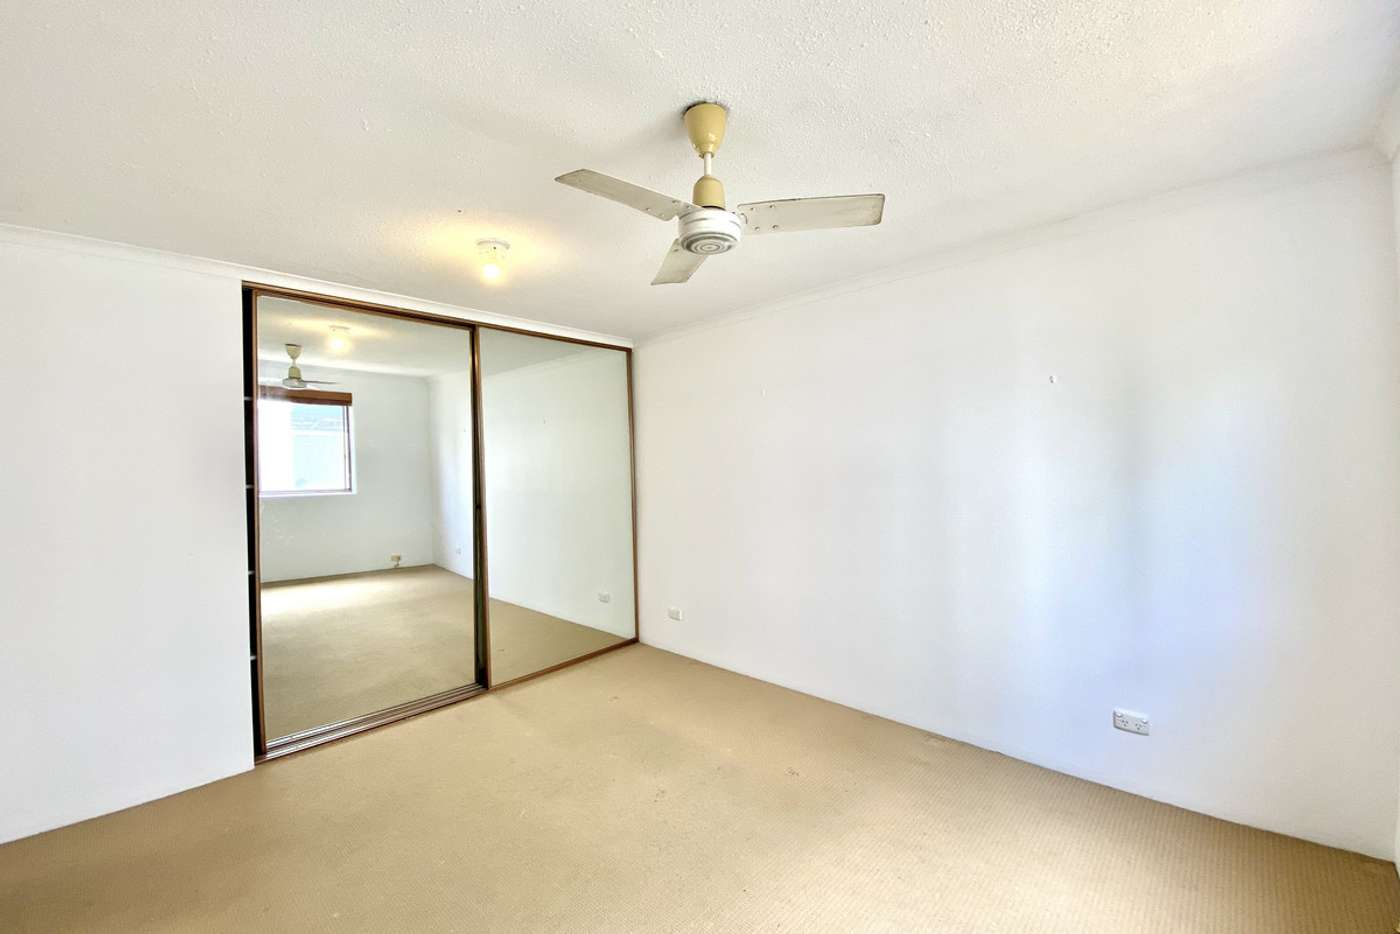 Sixth view of Homely unit listing, 2a/61 Depper Street, St Lucia QLD 4067